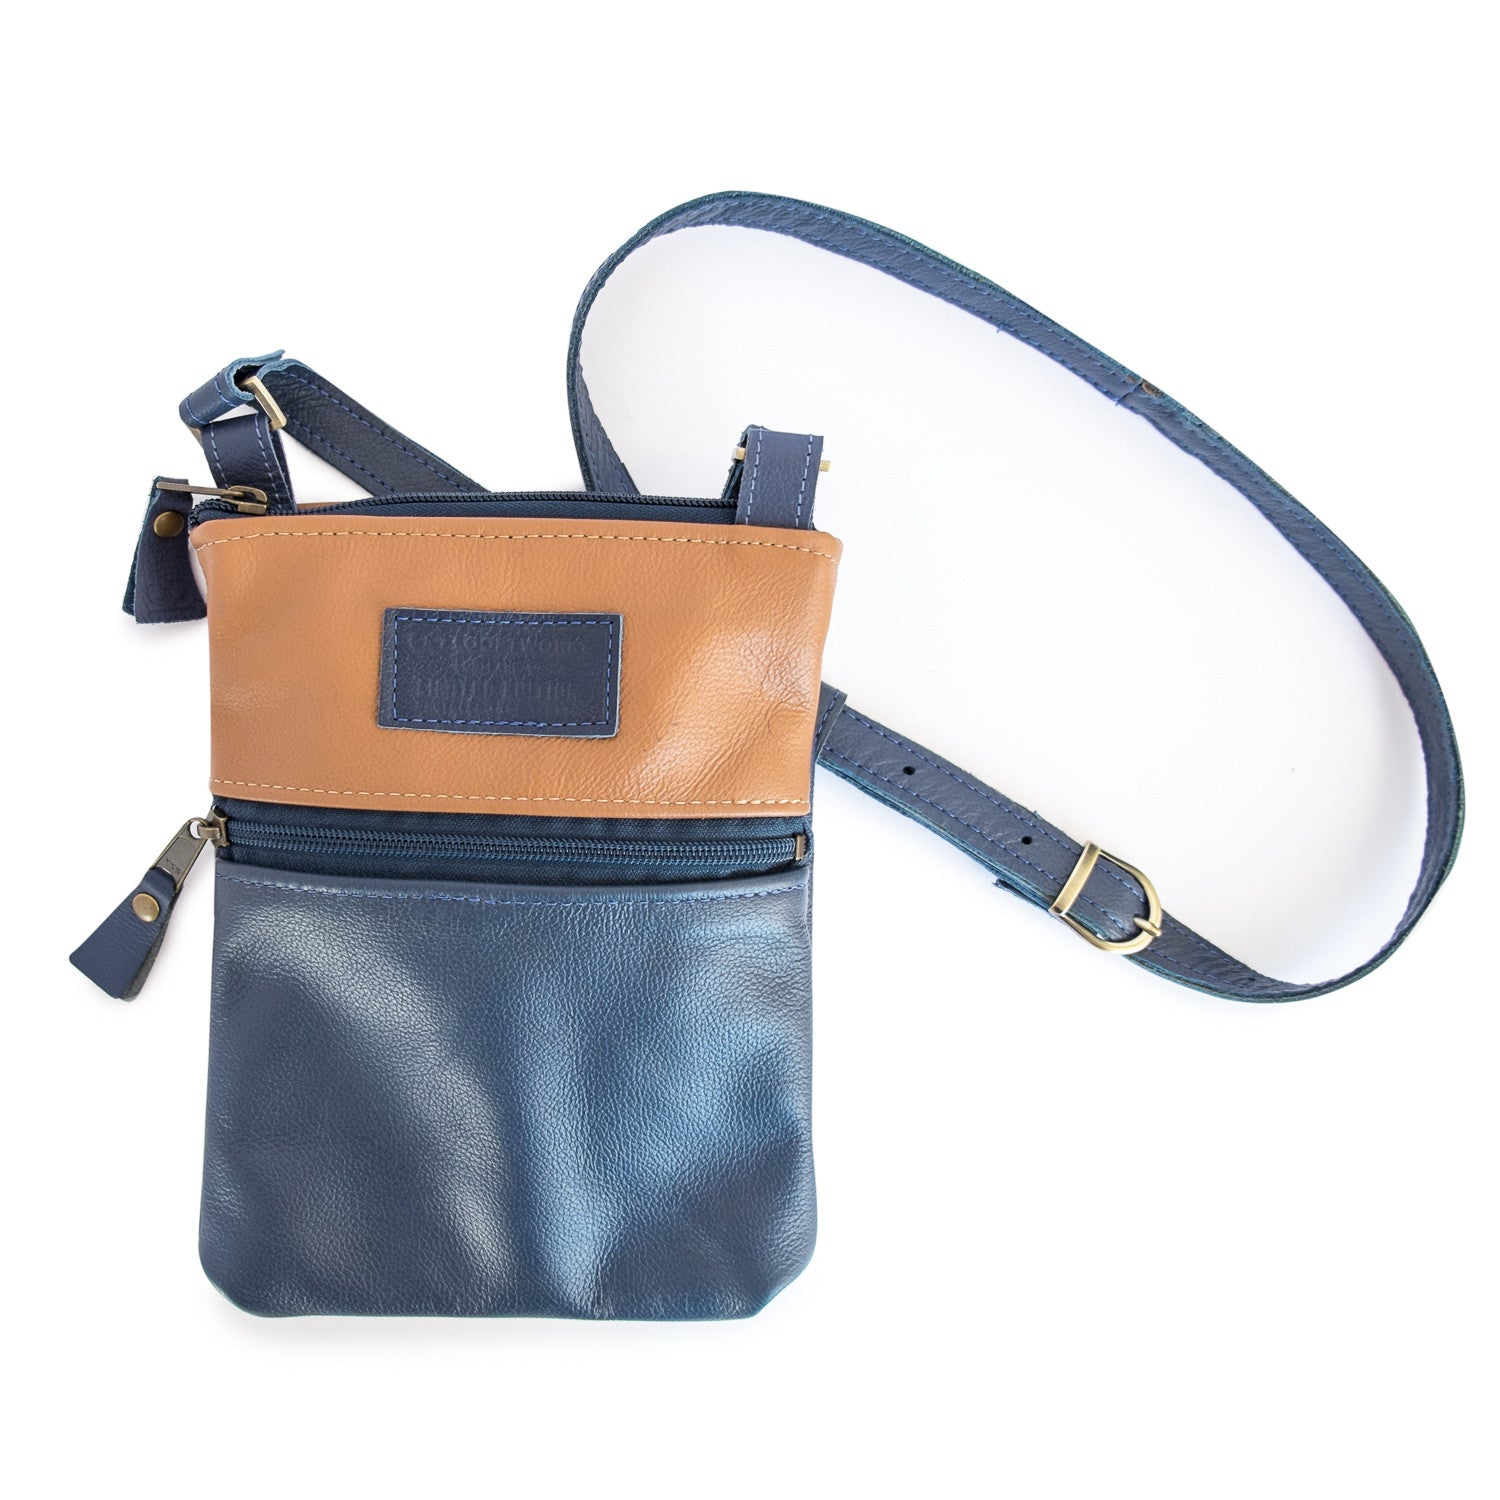 In Flight LUV Crossbody Shoulder Bags - Looptworks